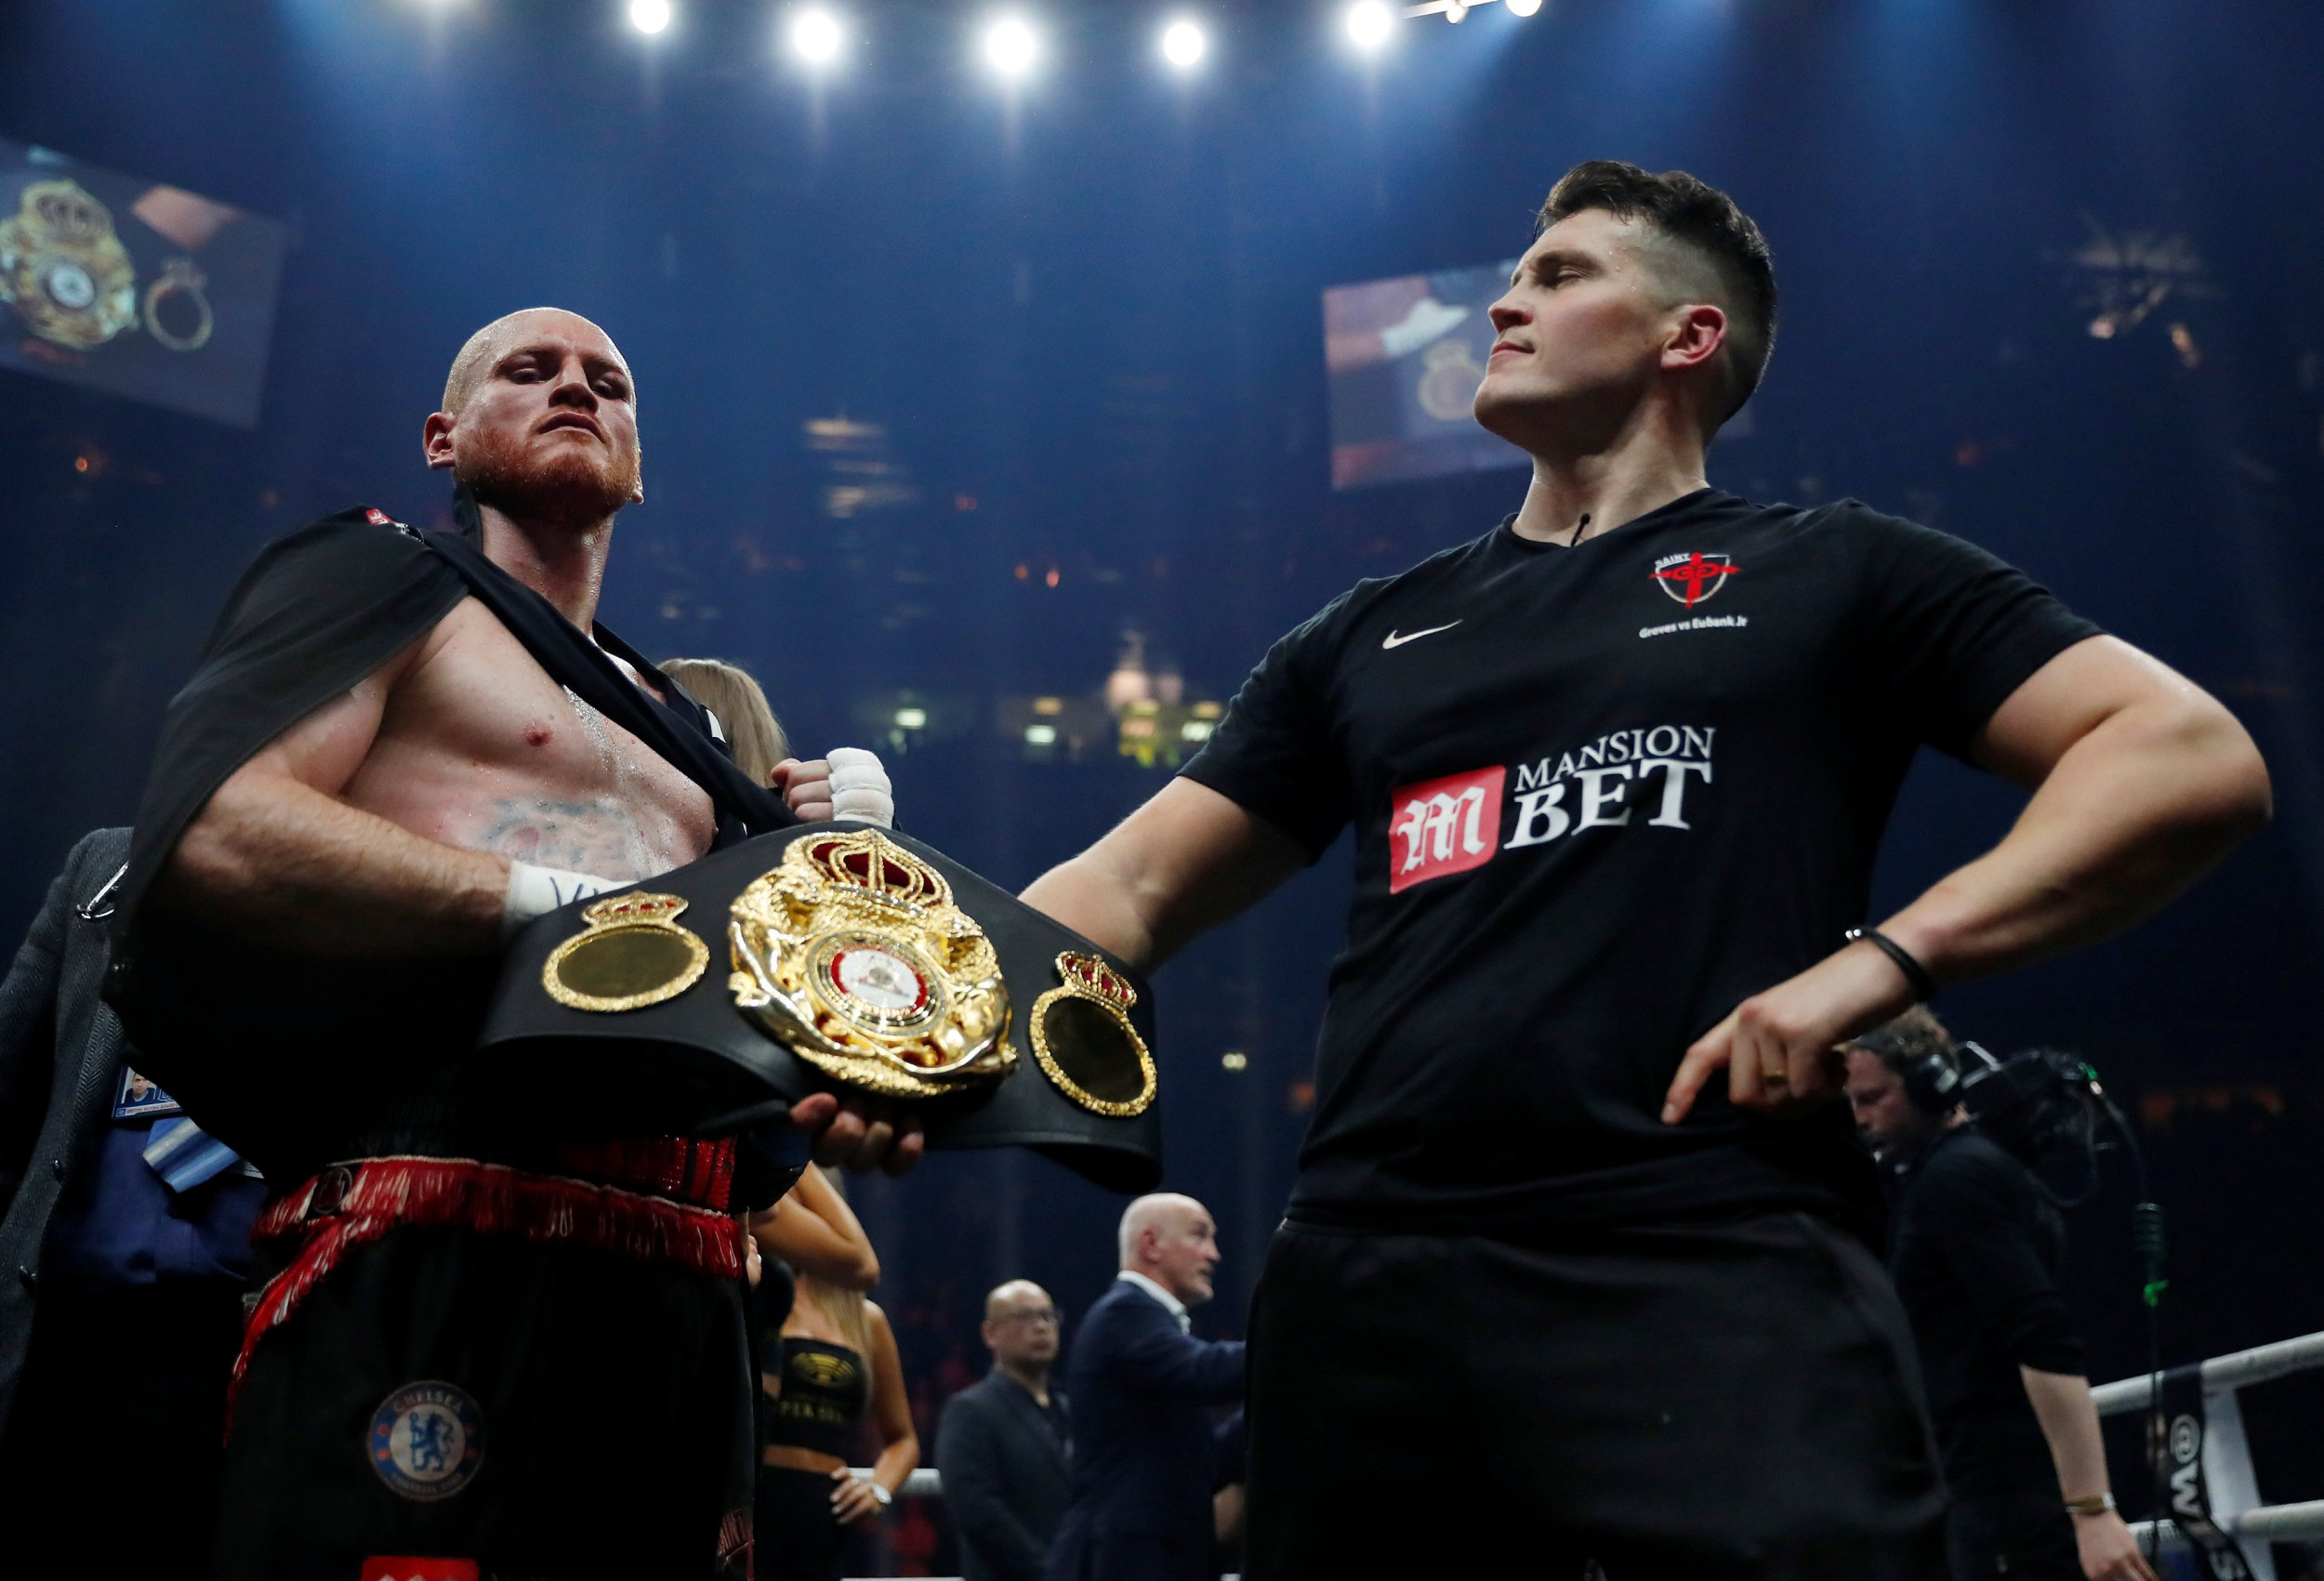 George Groves was never IBO super-middleweight champion and Chris Eubank Jr can reclaim title